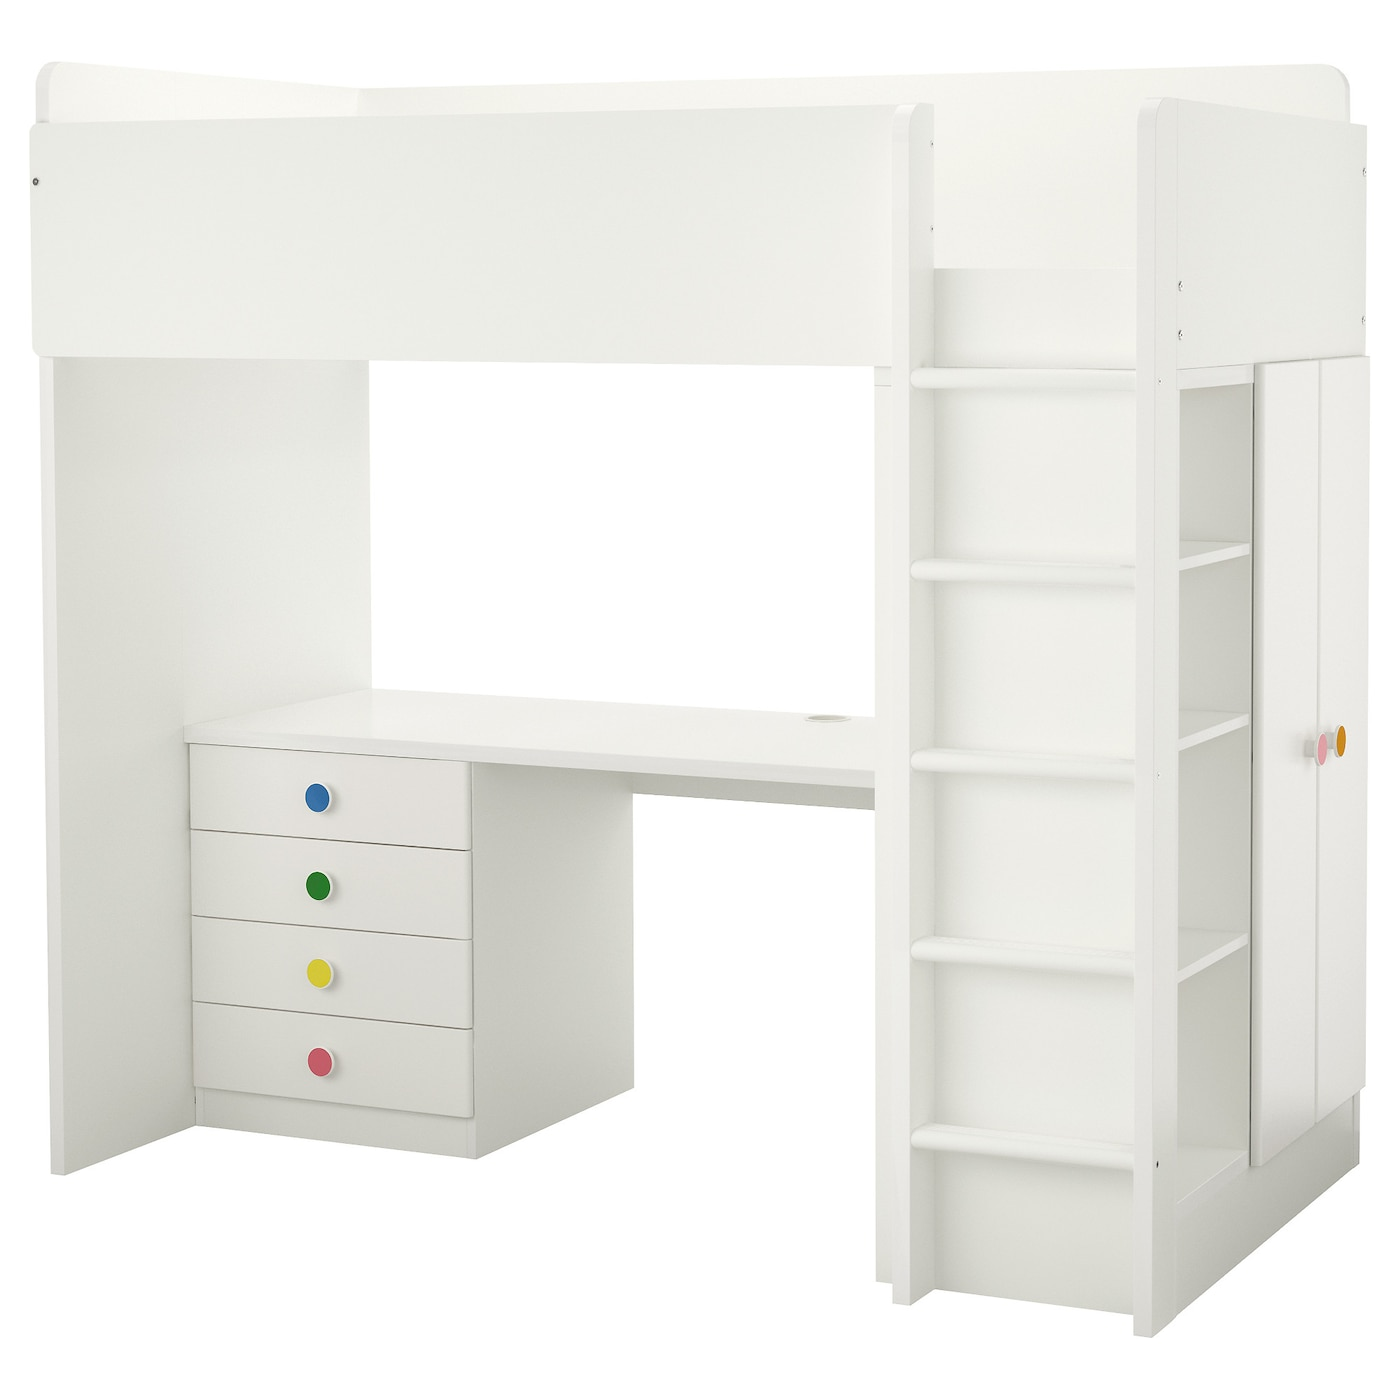 Interior Ikeaikea childrens storage units solutions ikea loft bed combo w 4 drawers2 doors